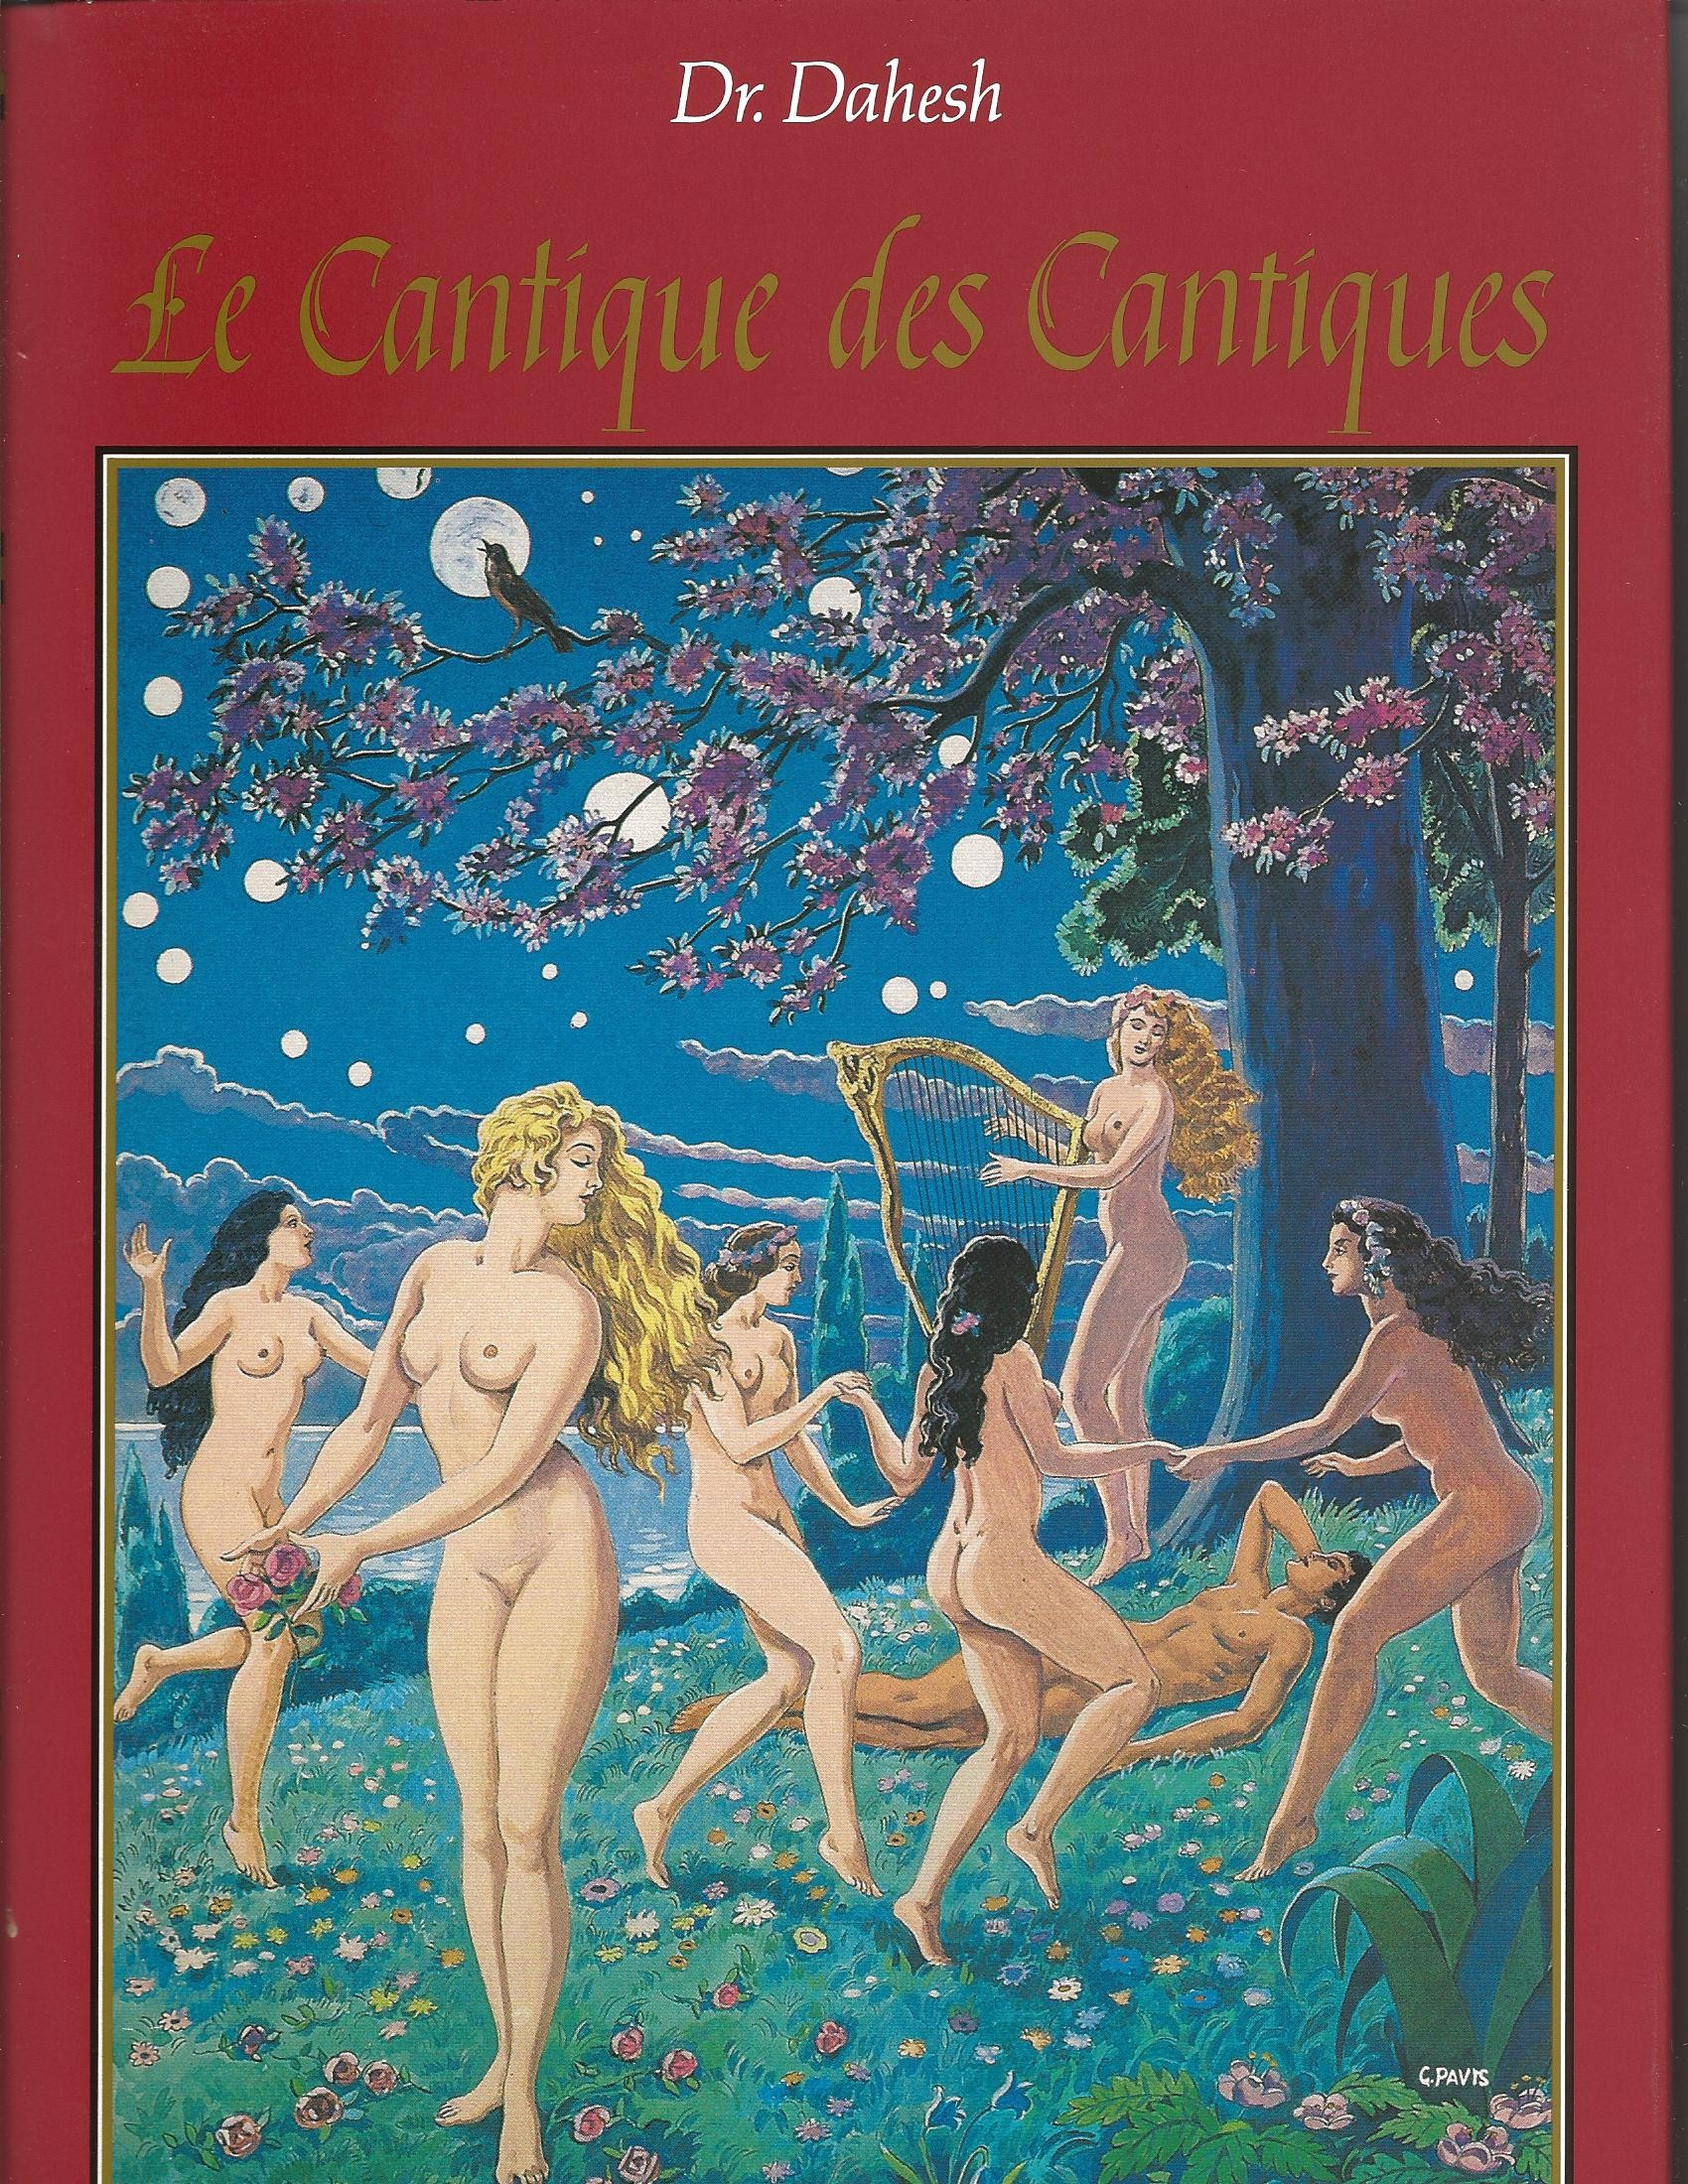 The Song of Songs - French Version (Le Cantique des Cantiques)